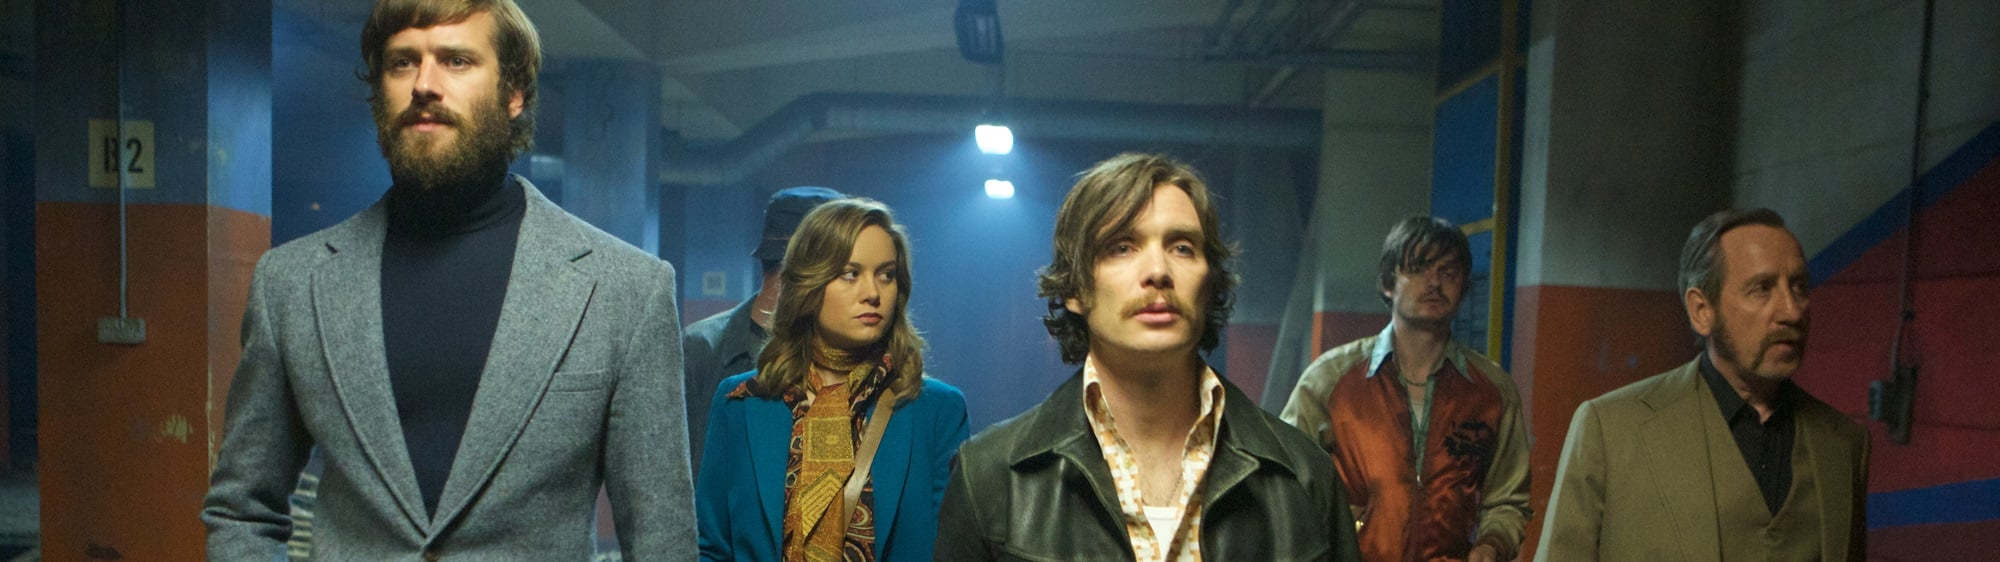 Crash, Bang, Wallop – Free Fire review